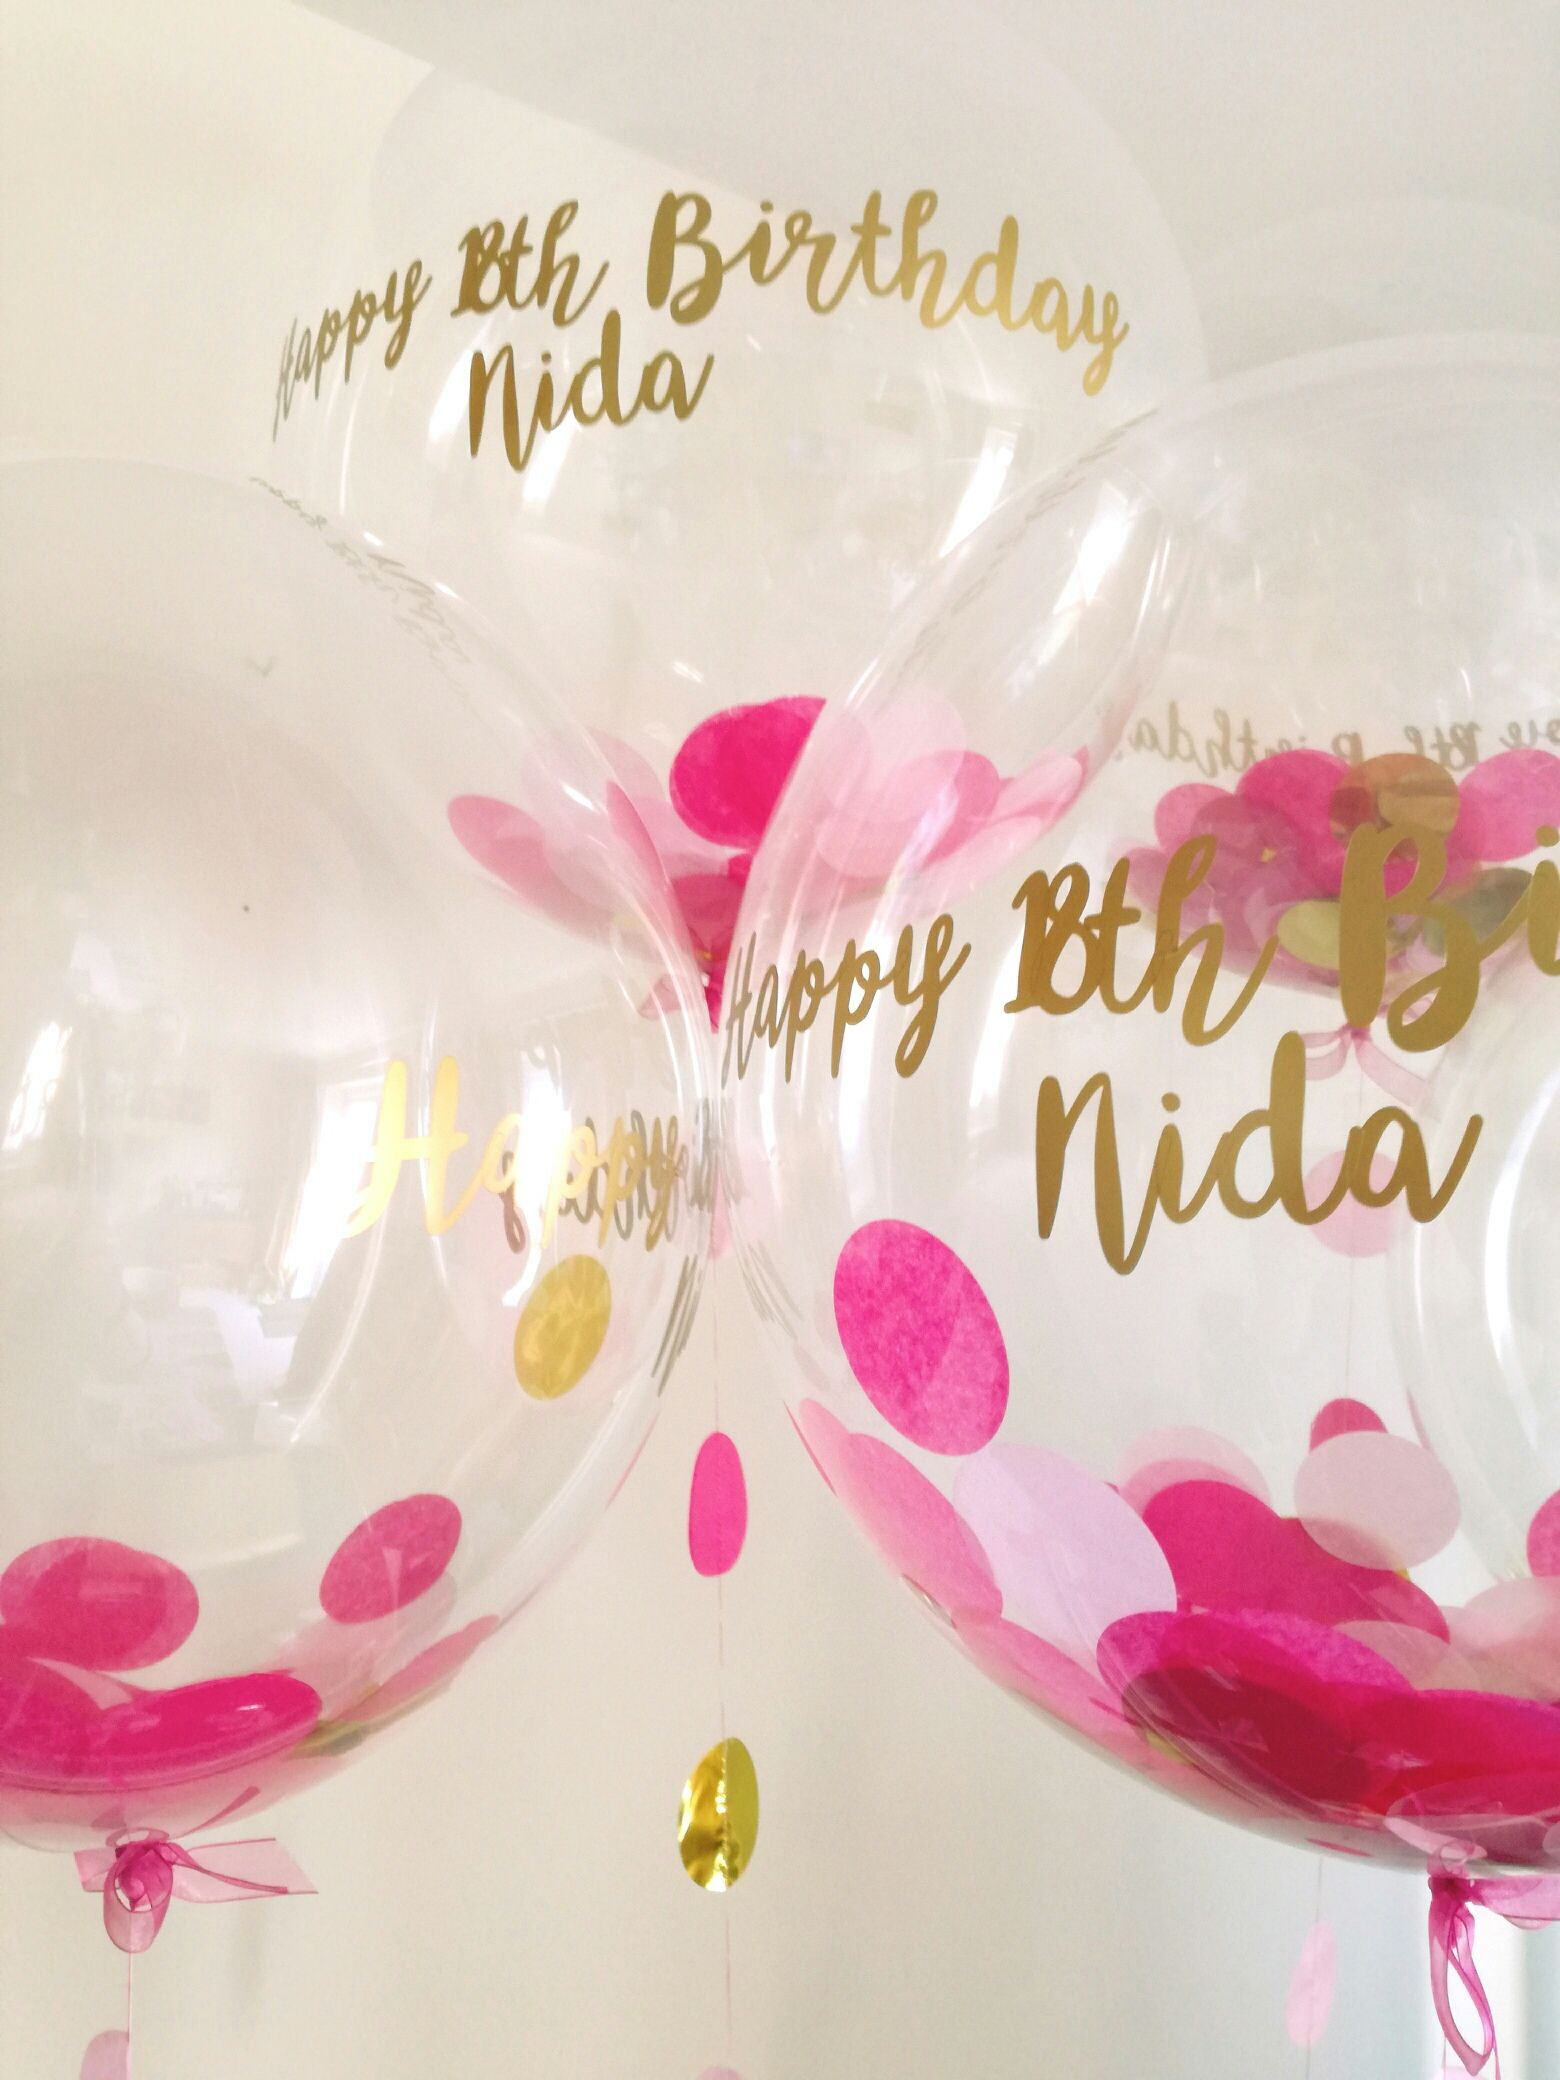 Personalised Rose Pink And Gold Confetti Balloon With 18th Birthday Writing Available From The Feather Company Website